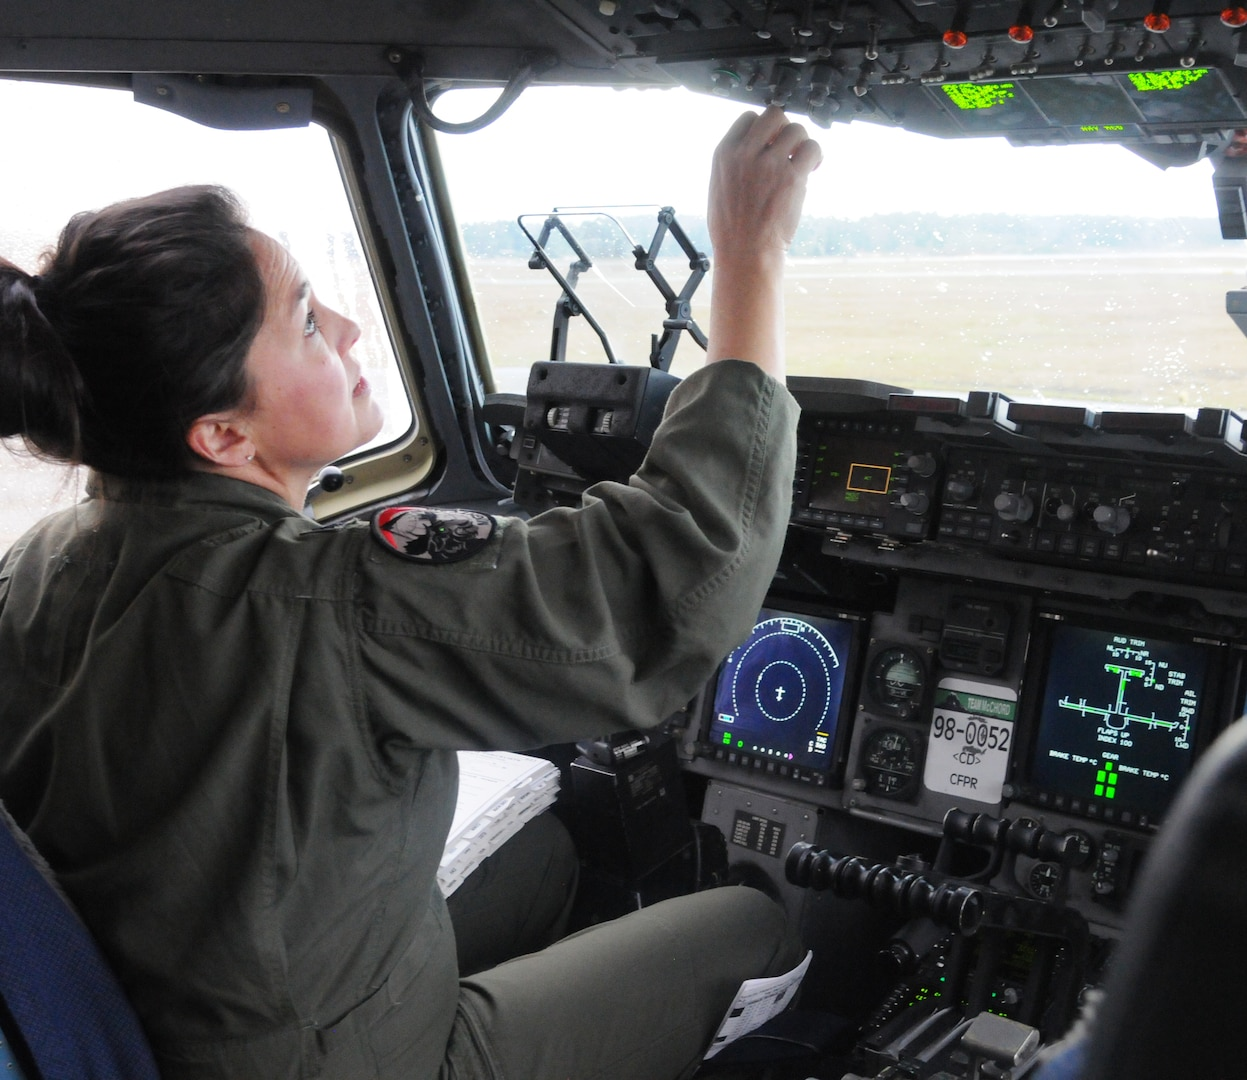 Lt. Col. Stephanie Severe, an Air Force Reserve pilot assigned to the 313th Airlift Squadron here, performs pre-flight checks before take off in a C-17 Globemaster III on March 15, 2021.